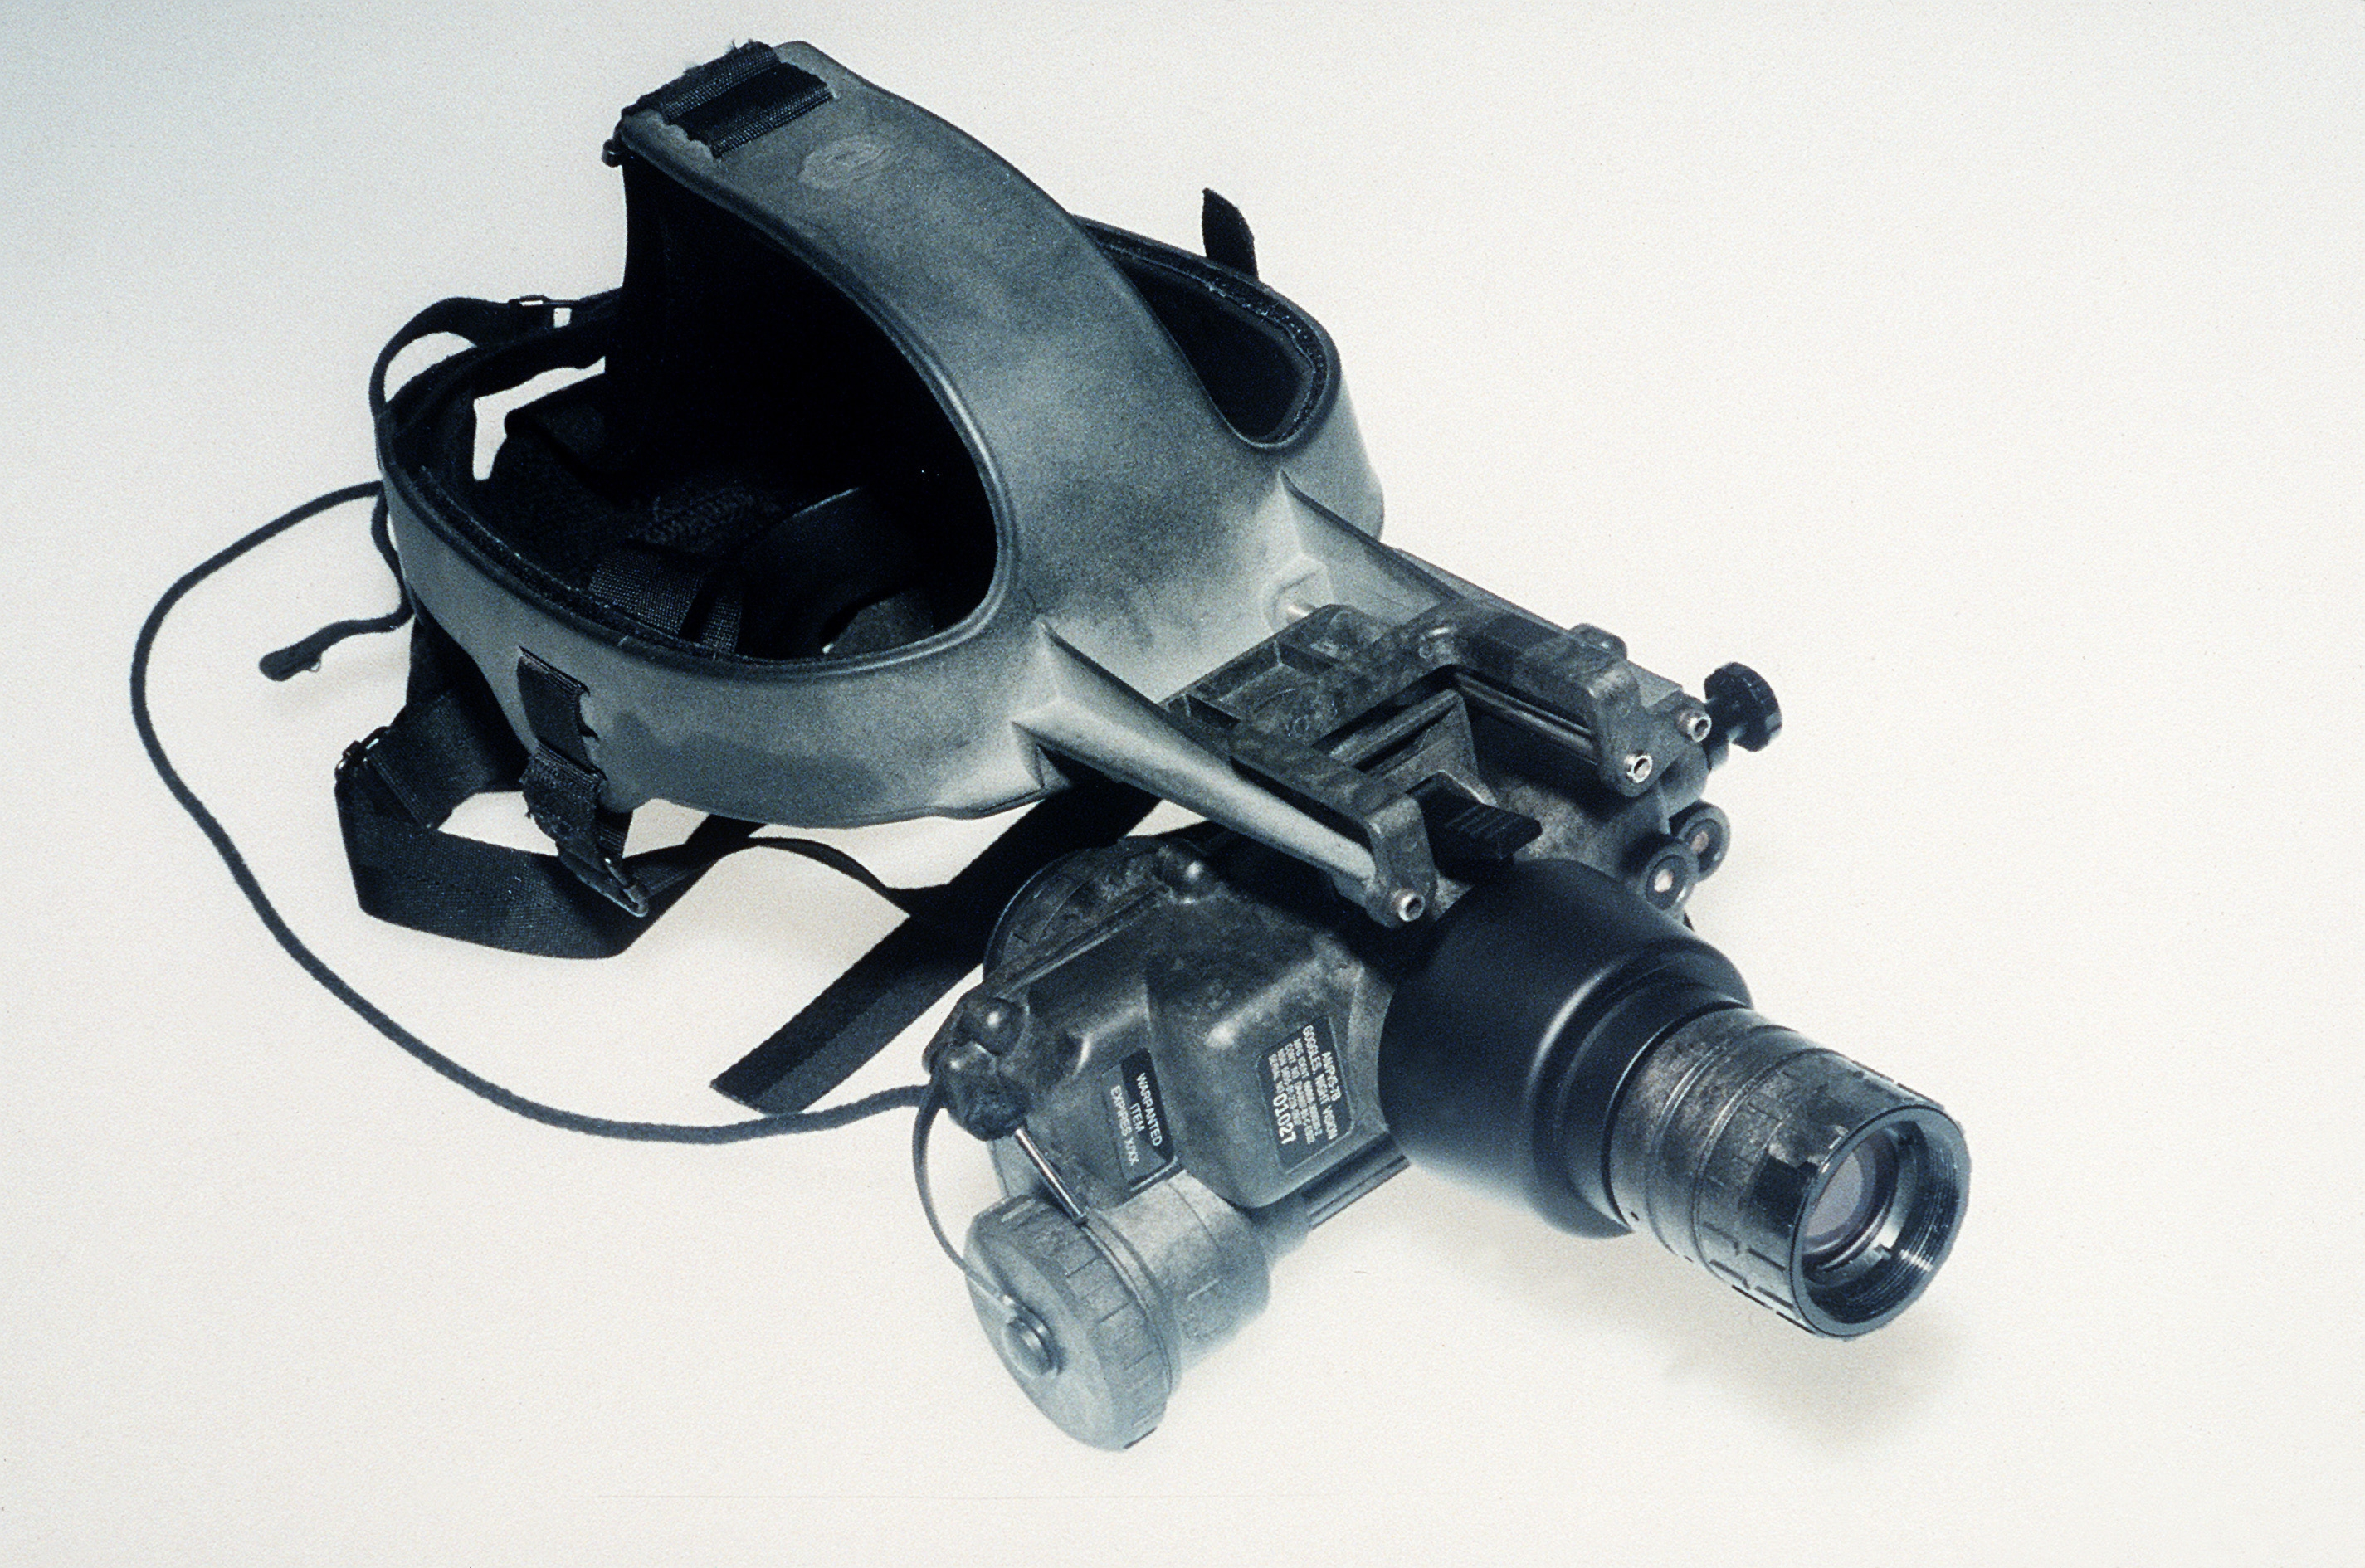 a night vision goggle with attached head mount